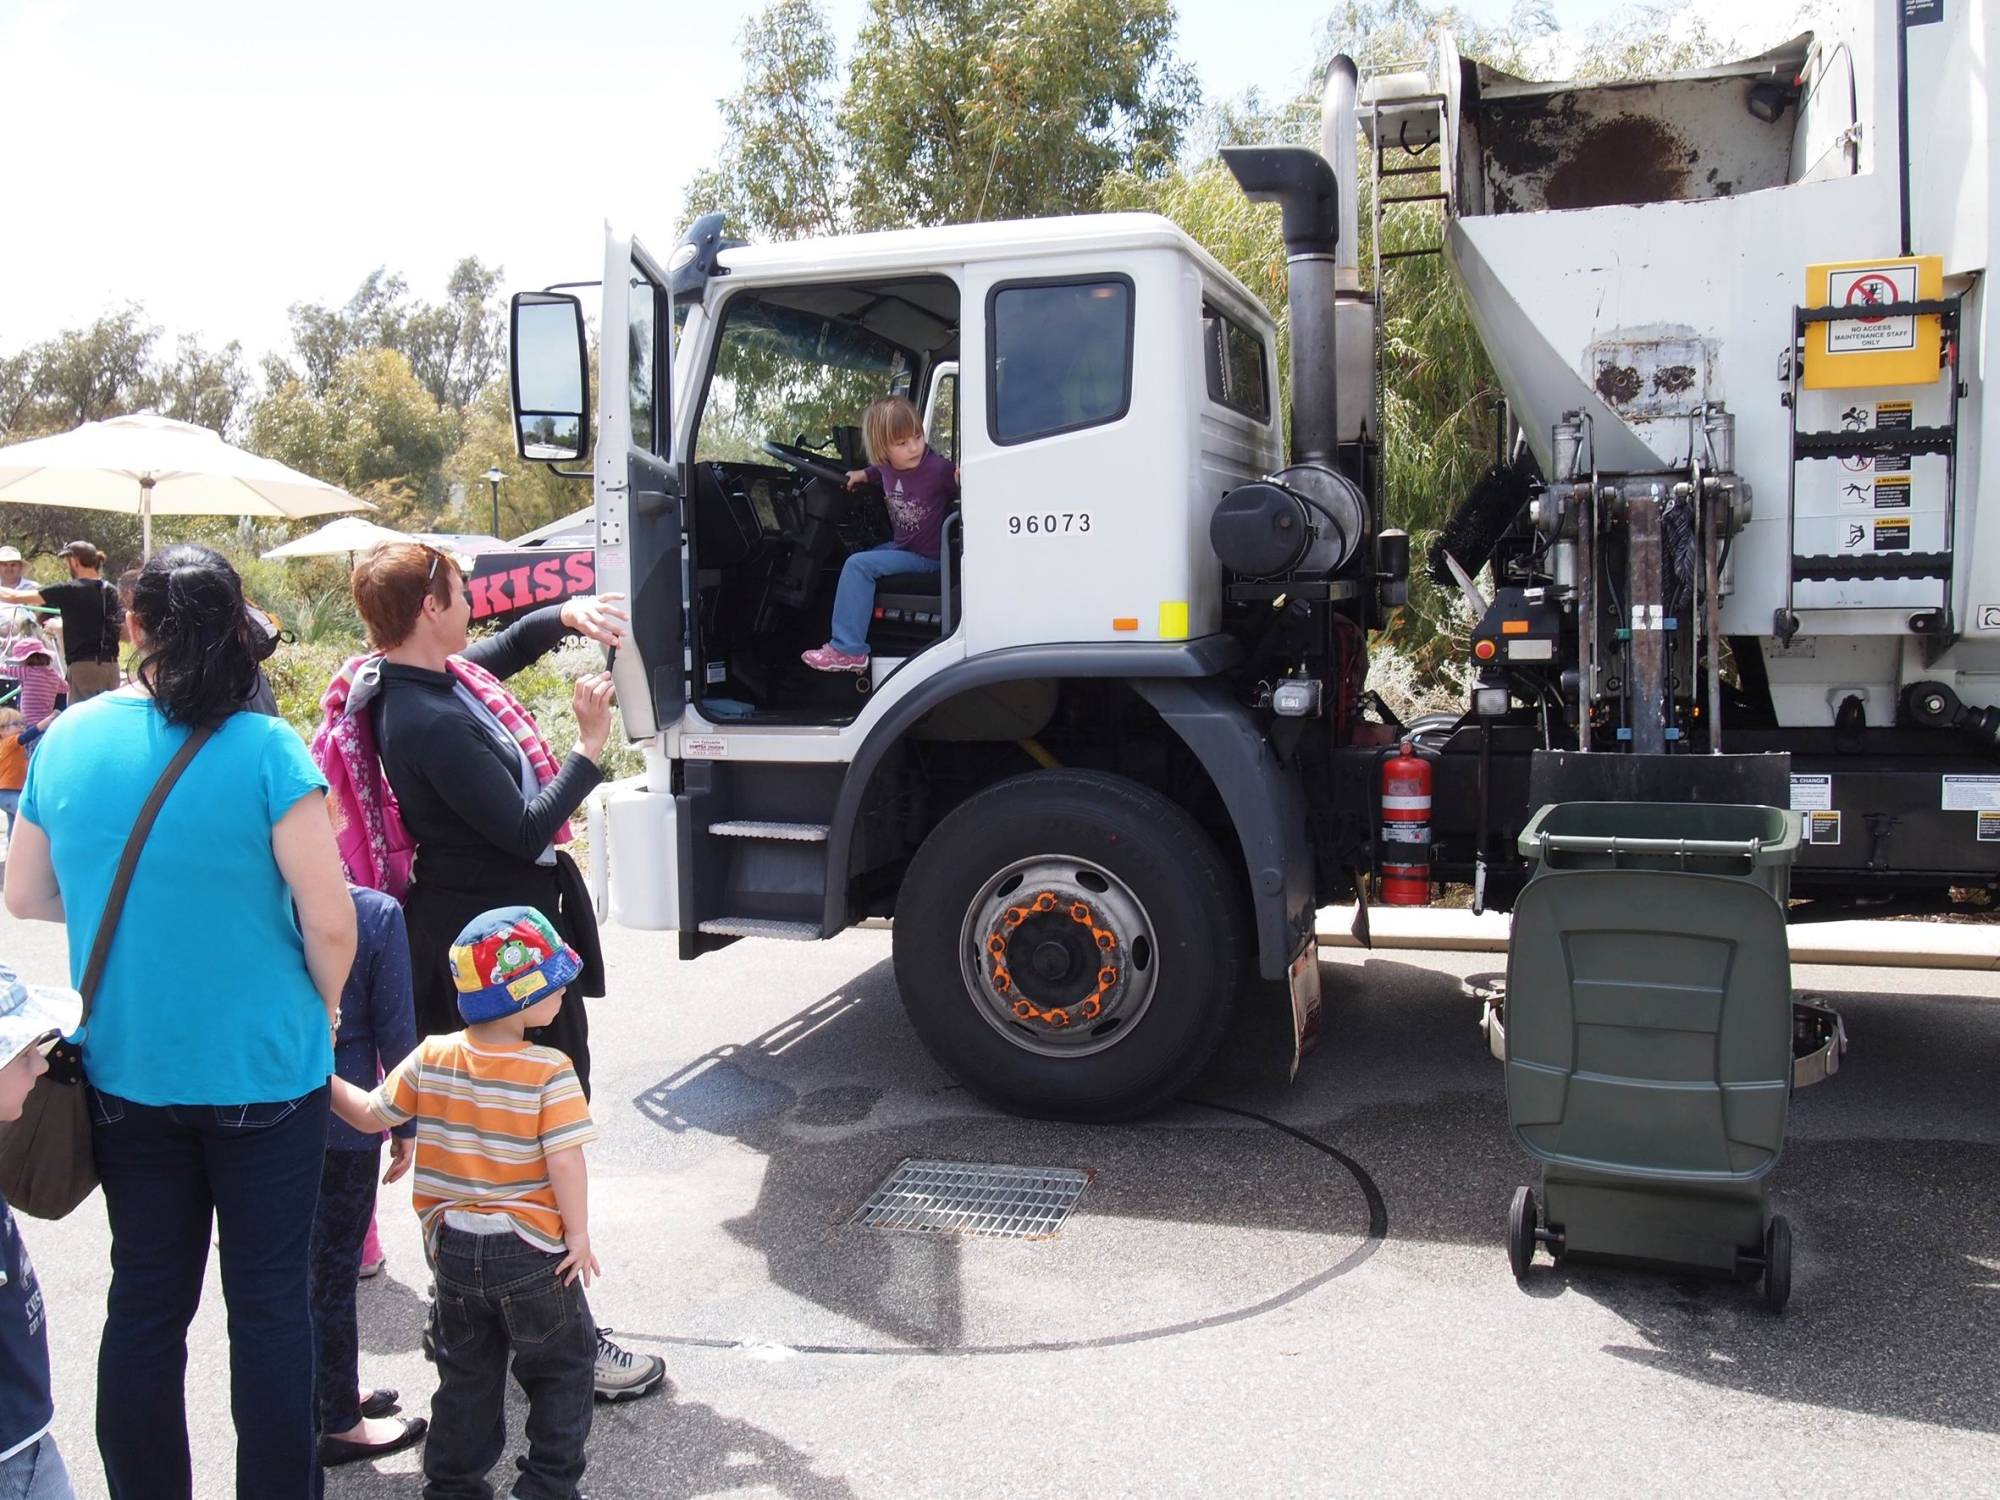 Visitors took the driver's seat in a City of Wanneroo rubbish truck (top) and Junkadelic Collective perform.